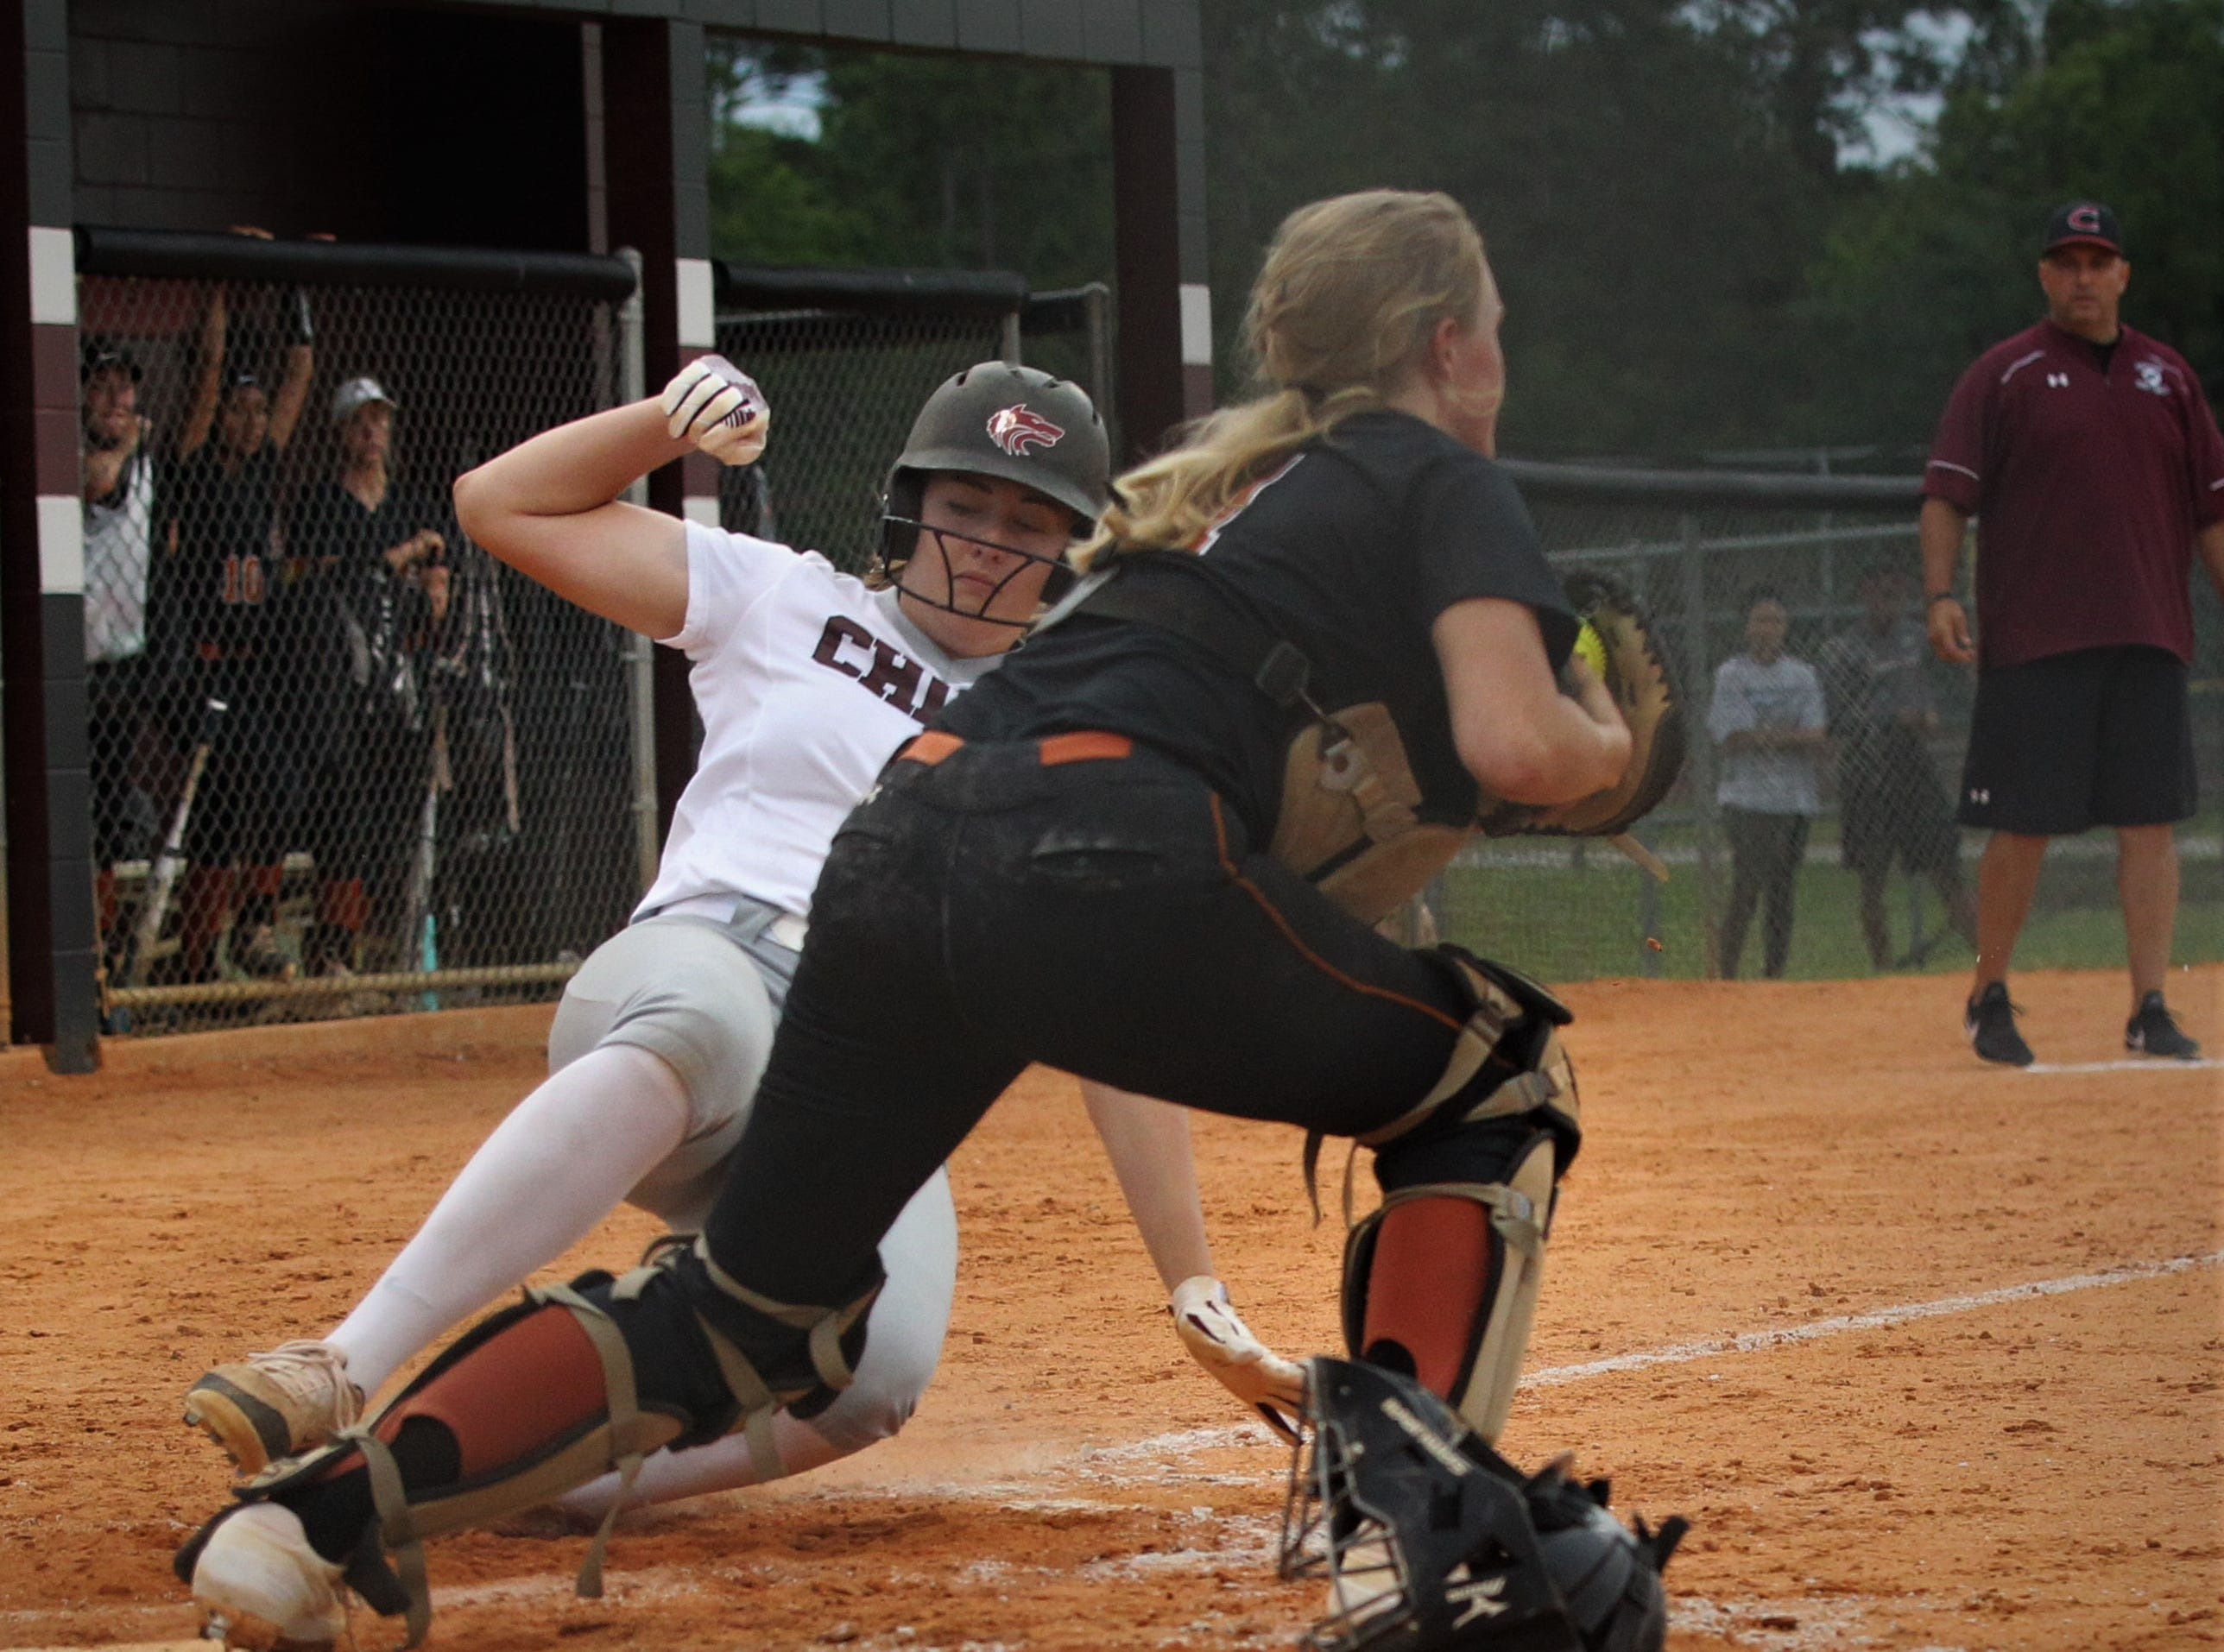 Chiles senior Haley Bond slides into home but a force out beats her as the Timberwolves beat Atlantic Coast 6-4 during a Region 1-8A quarterfinal softball game on Wednesday, May 8, 2019.